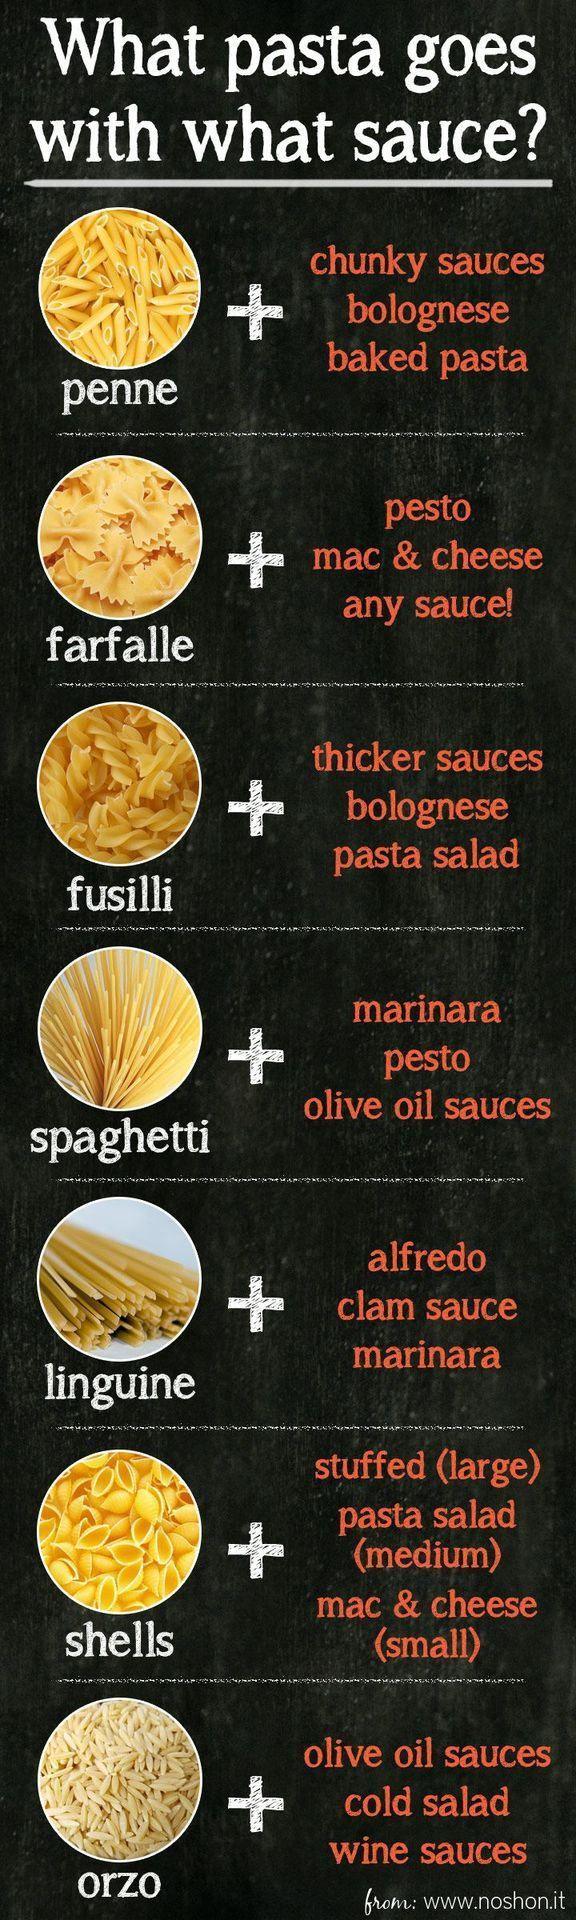 what pasta goes with what sauce